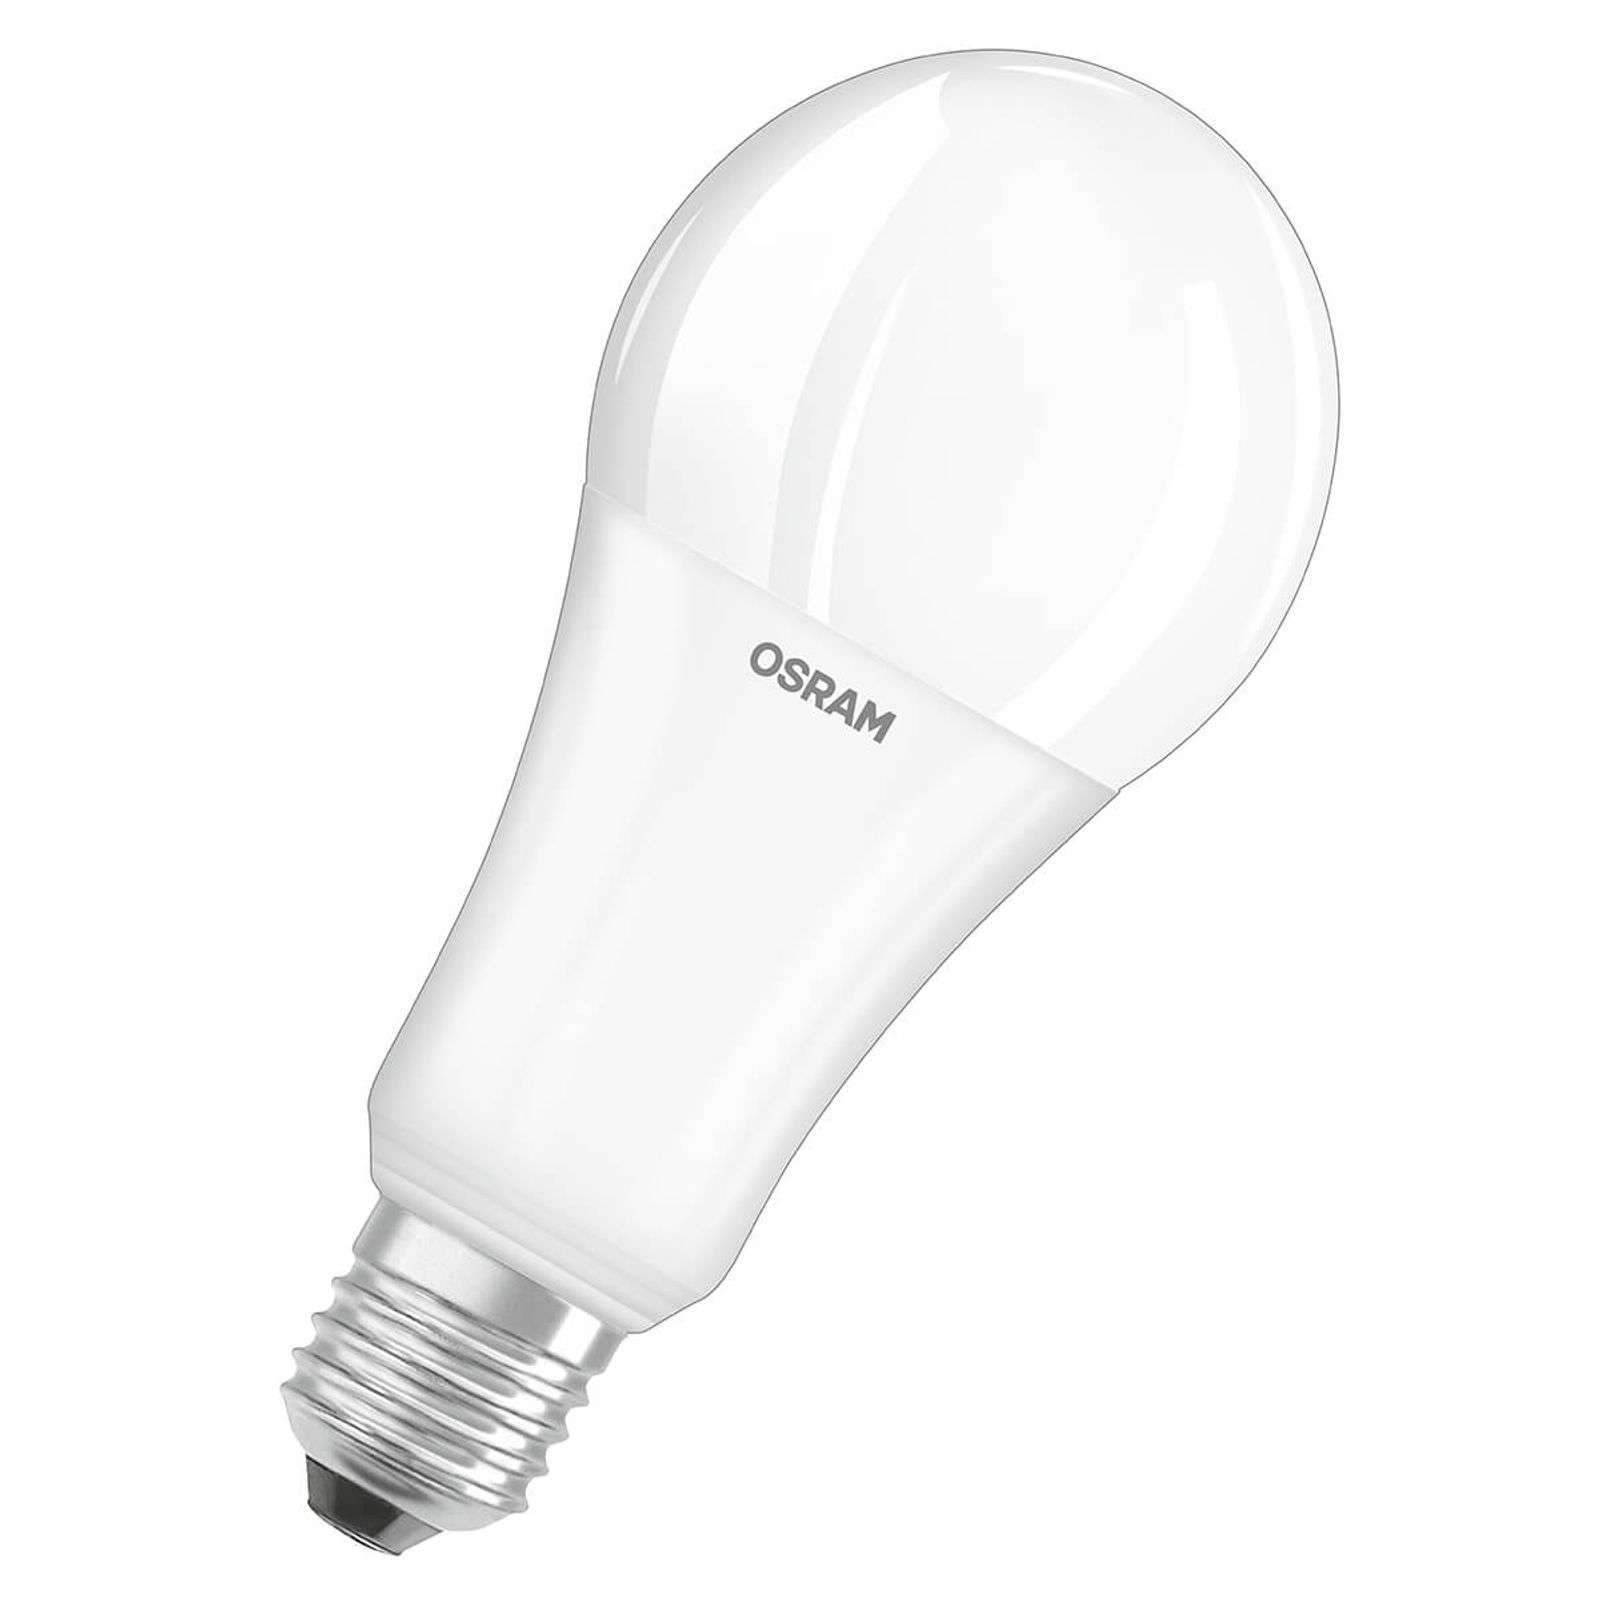 Lampadina LED E27 21W, 2.500 lumen, dimmerabile